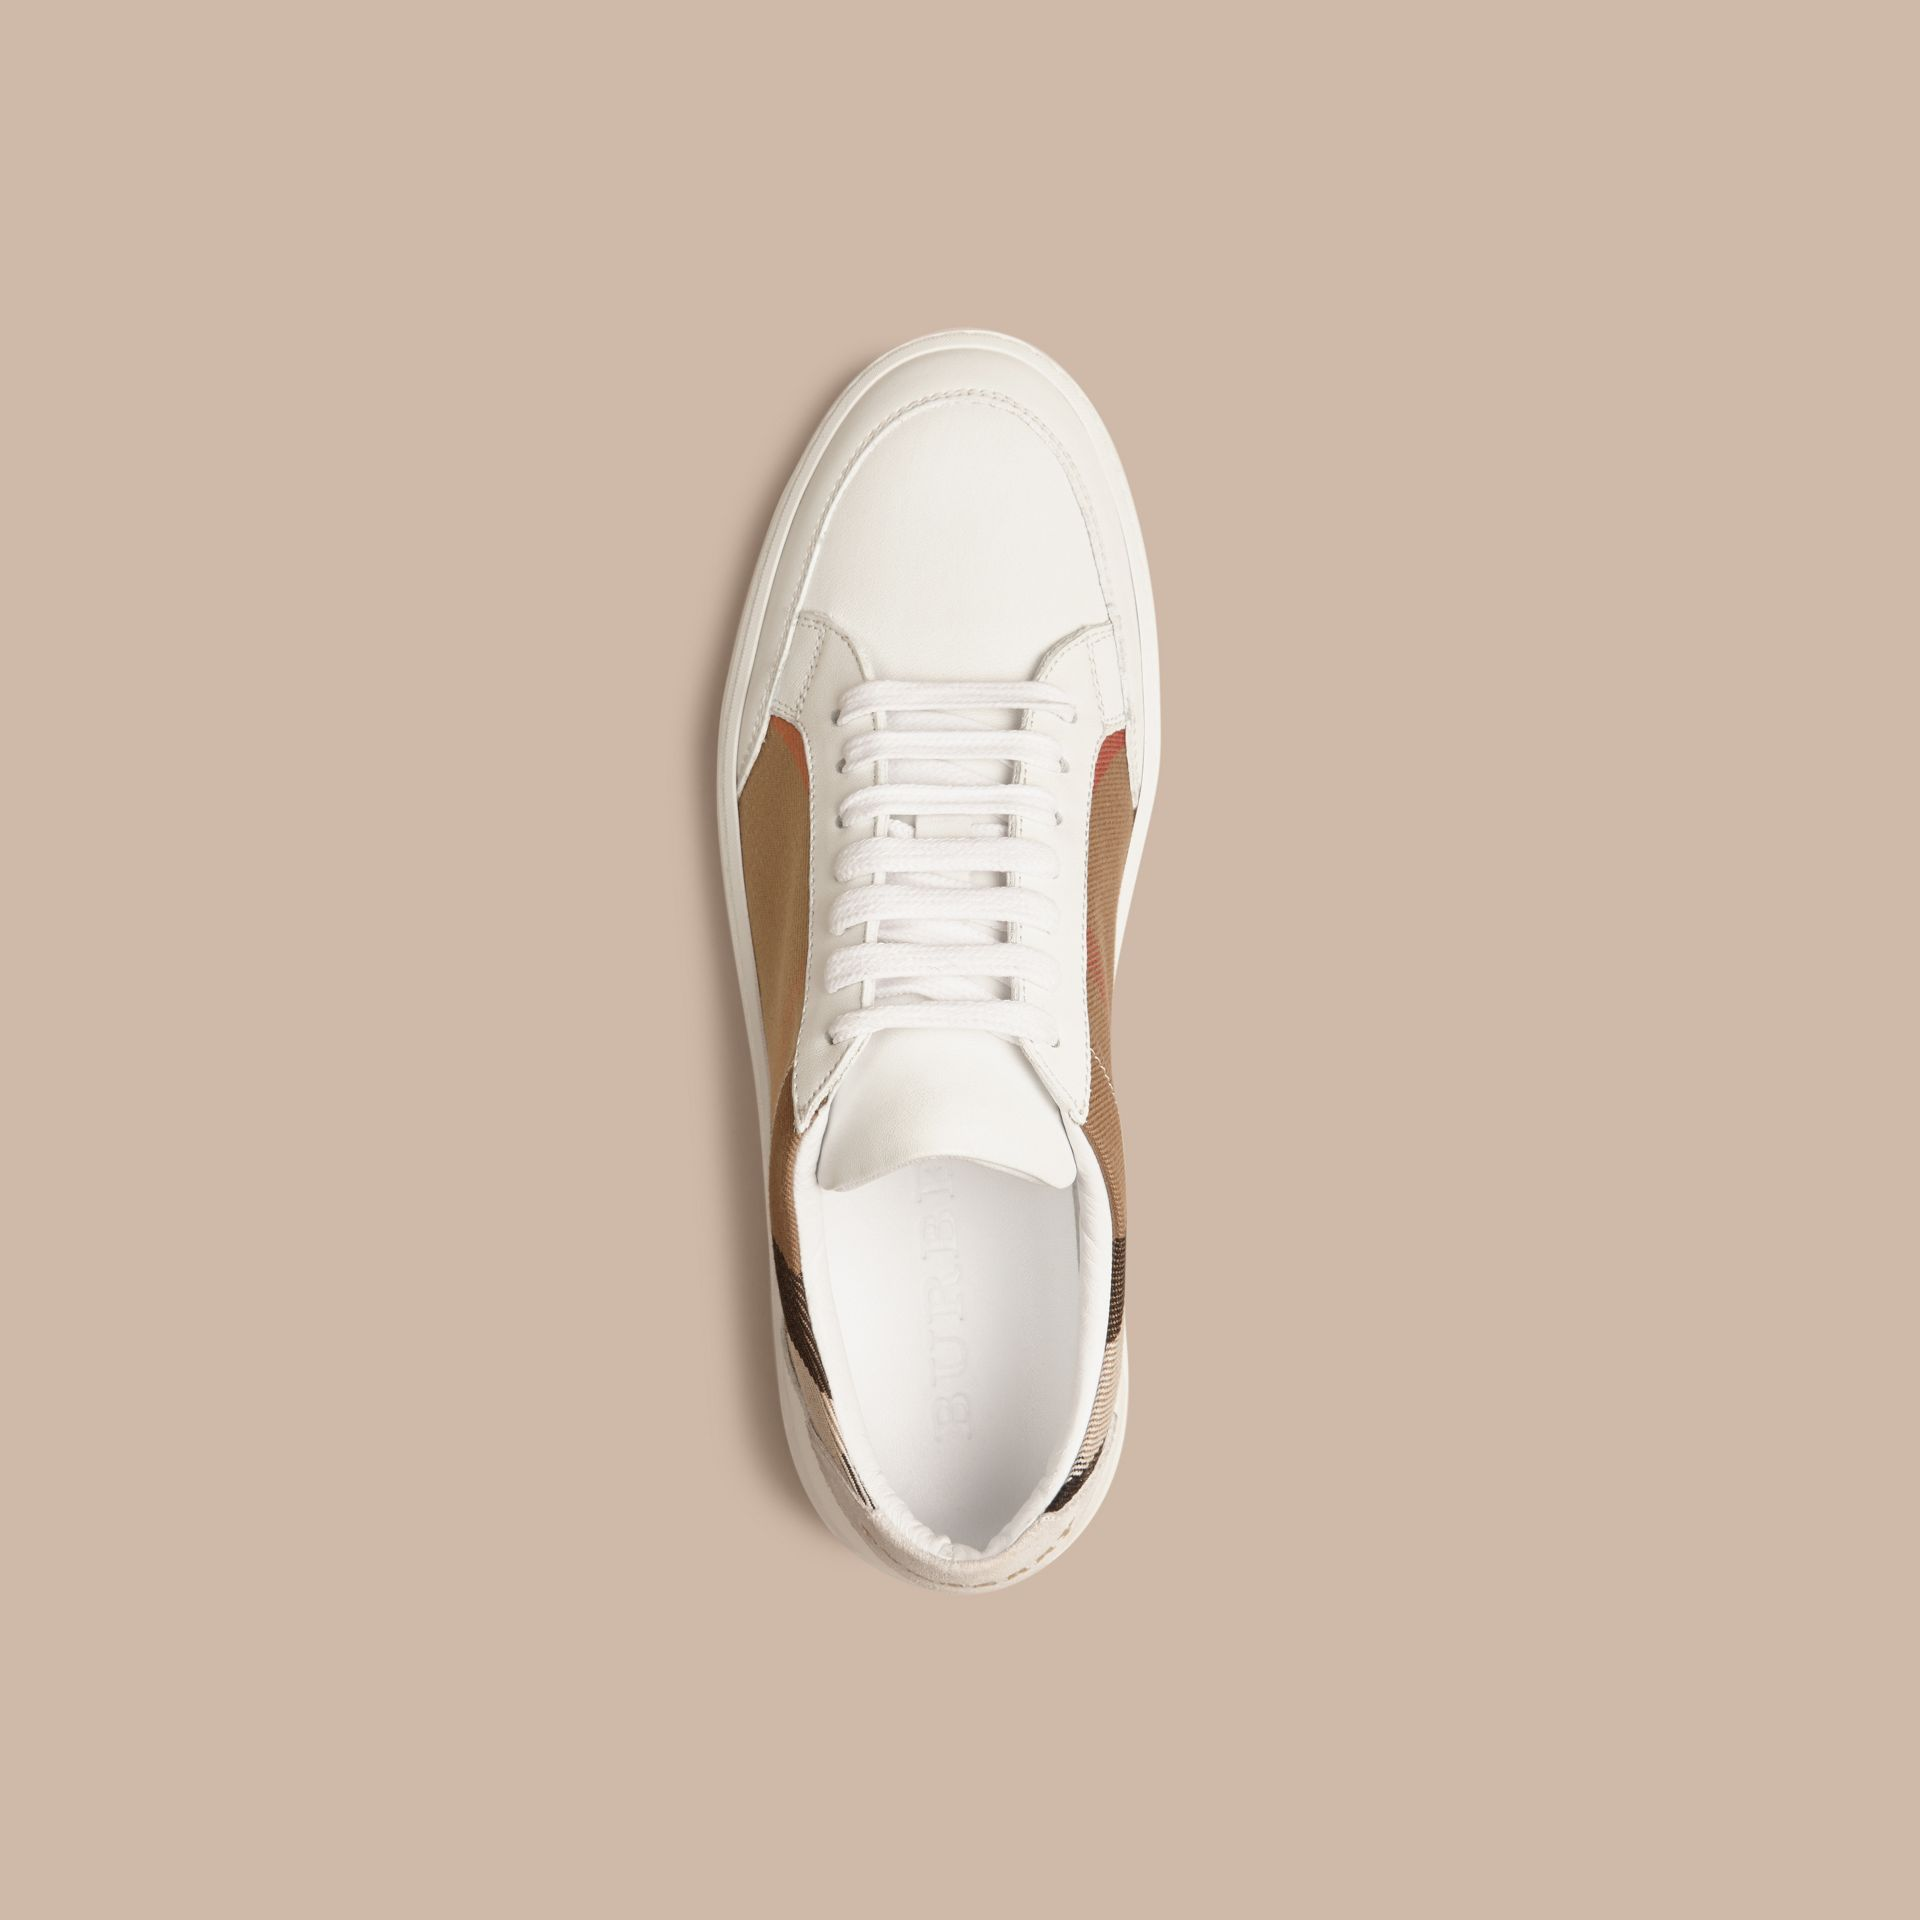 House check/optic white House Check and Leather Sneakers Check/optic White - gallery image 3